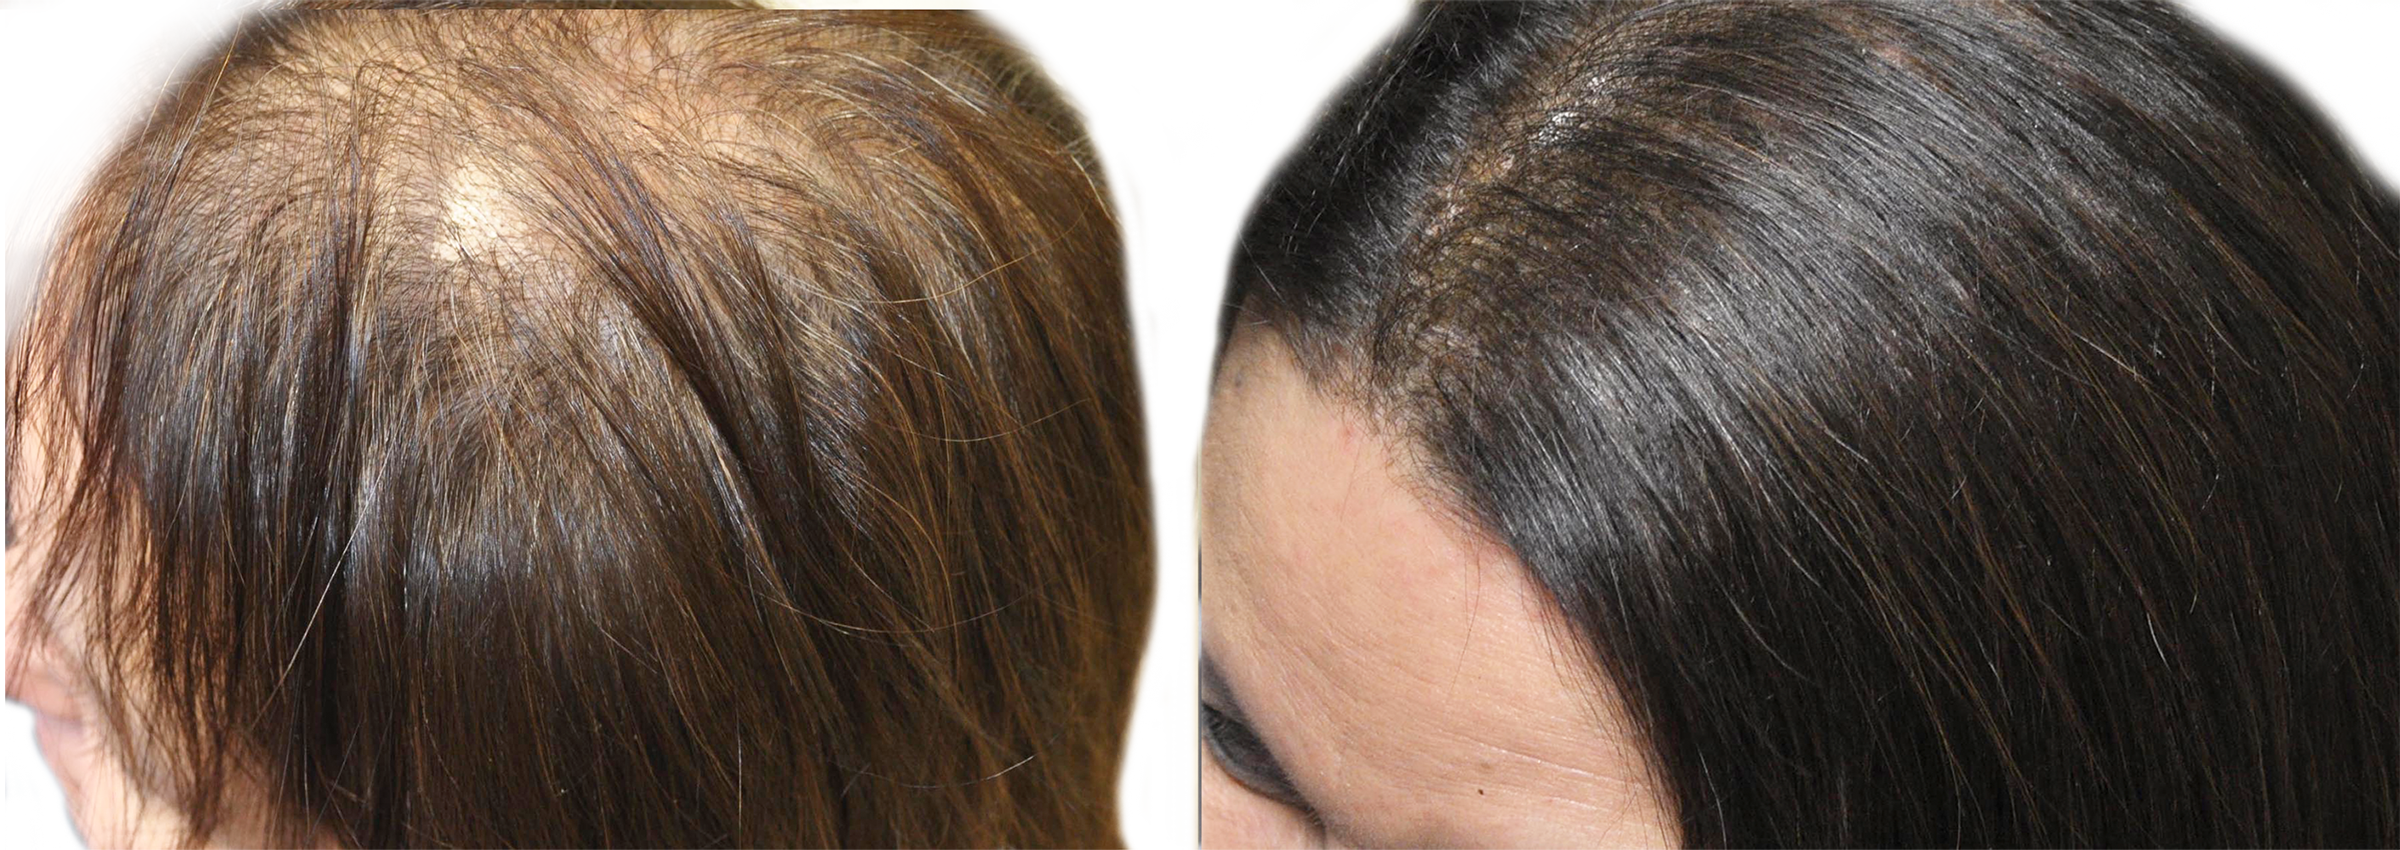 hair rejuvenation before and after